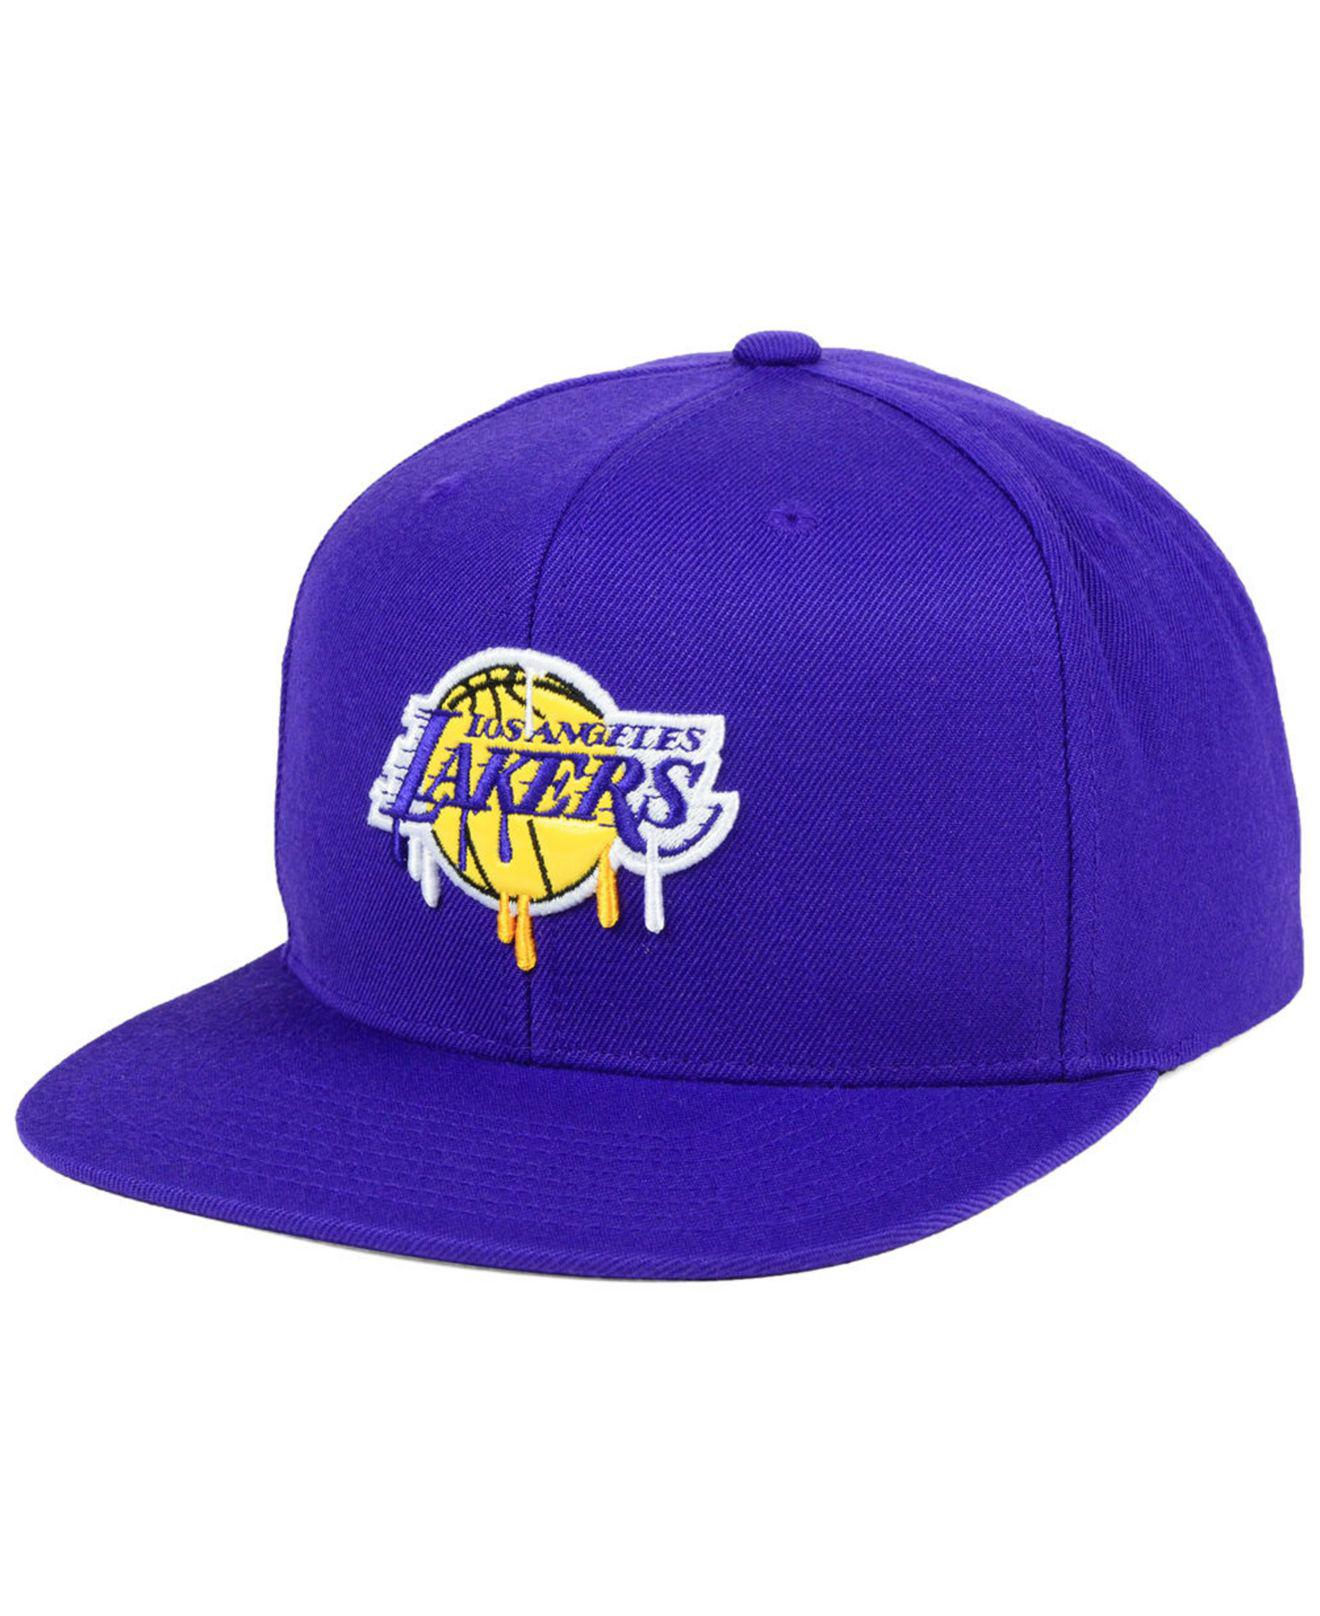 f1318dd6 ... wholesale lyst mitchell ness los angeles lakers dripped snapback cap in  5003a 0fac5